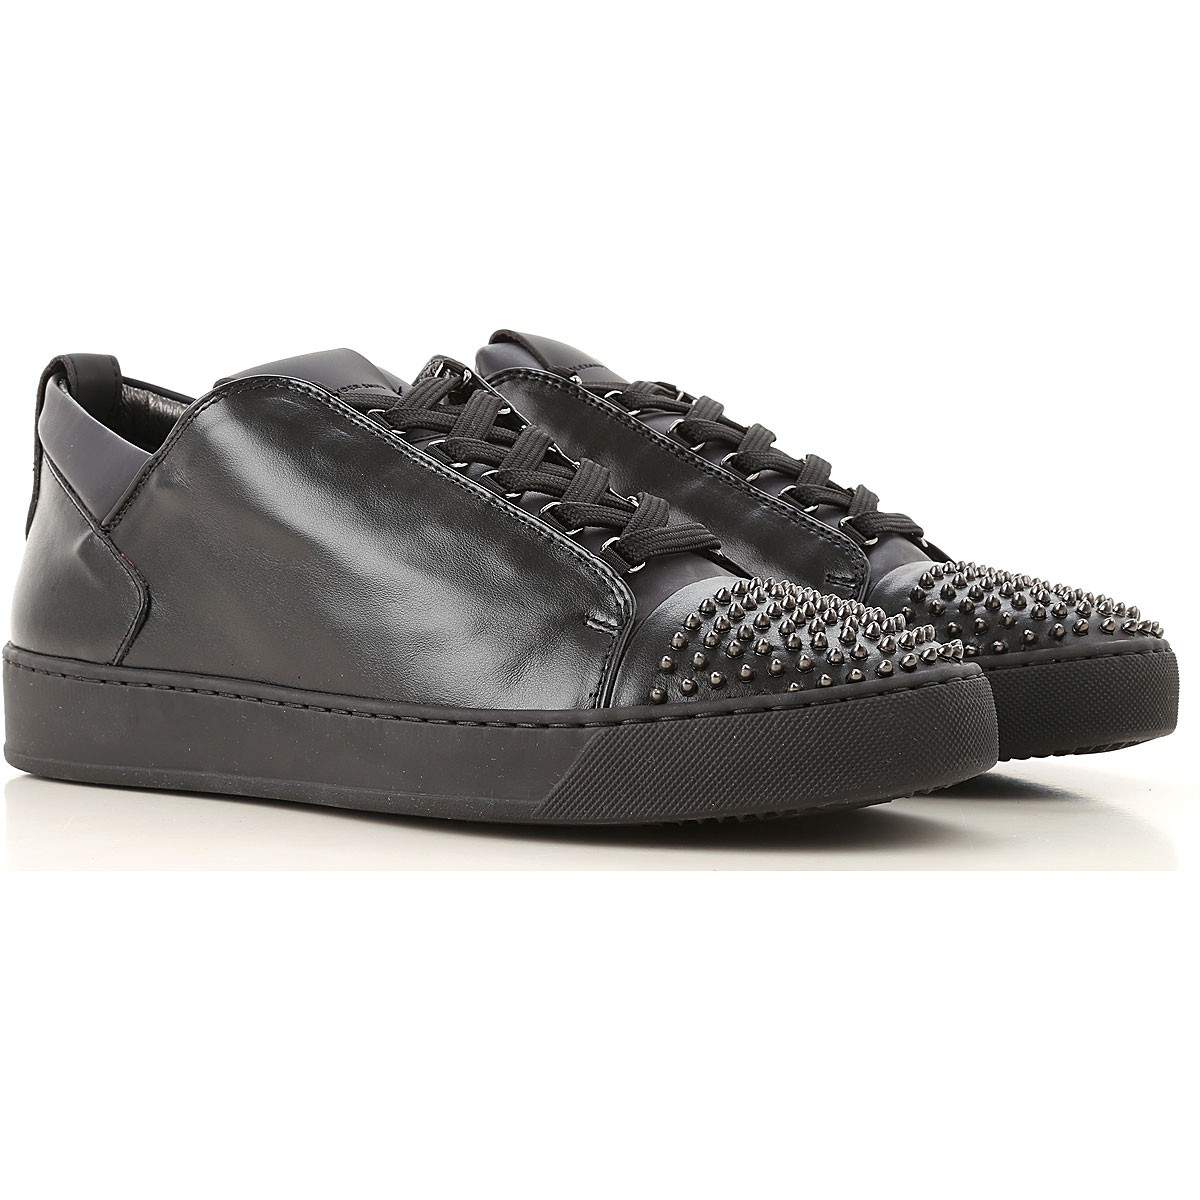 Image of Alexander Smith Sneakers for Men, Black, Leather, 2017, 10 11 7 8 9